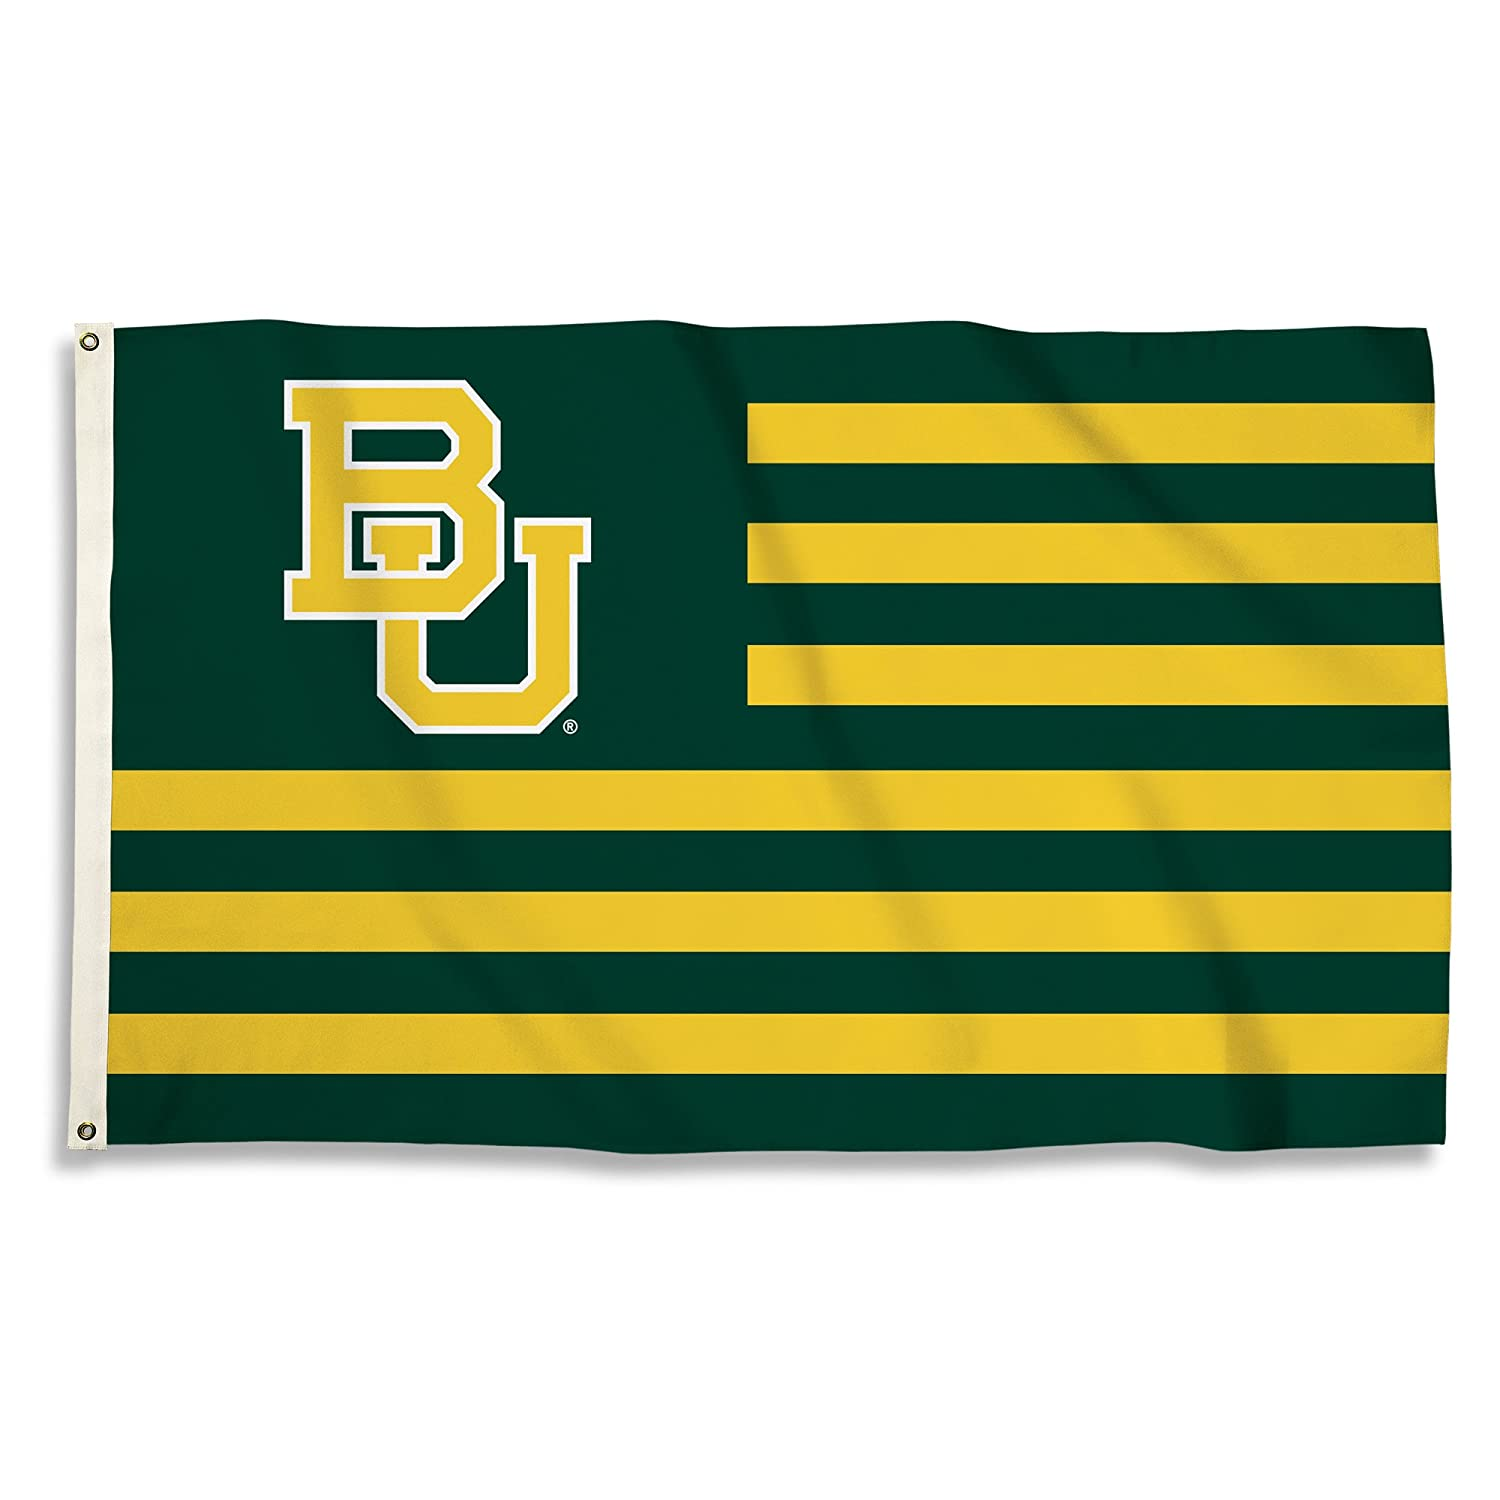 Green, NCAA Baylor Bears 3 X 5 Foot Flag with Grommets